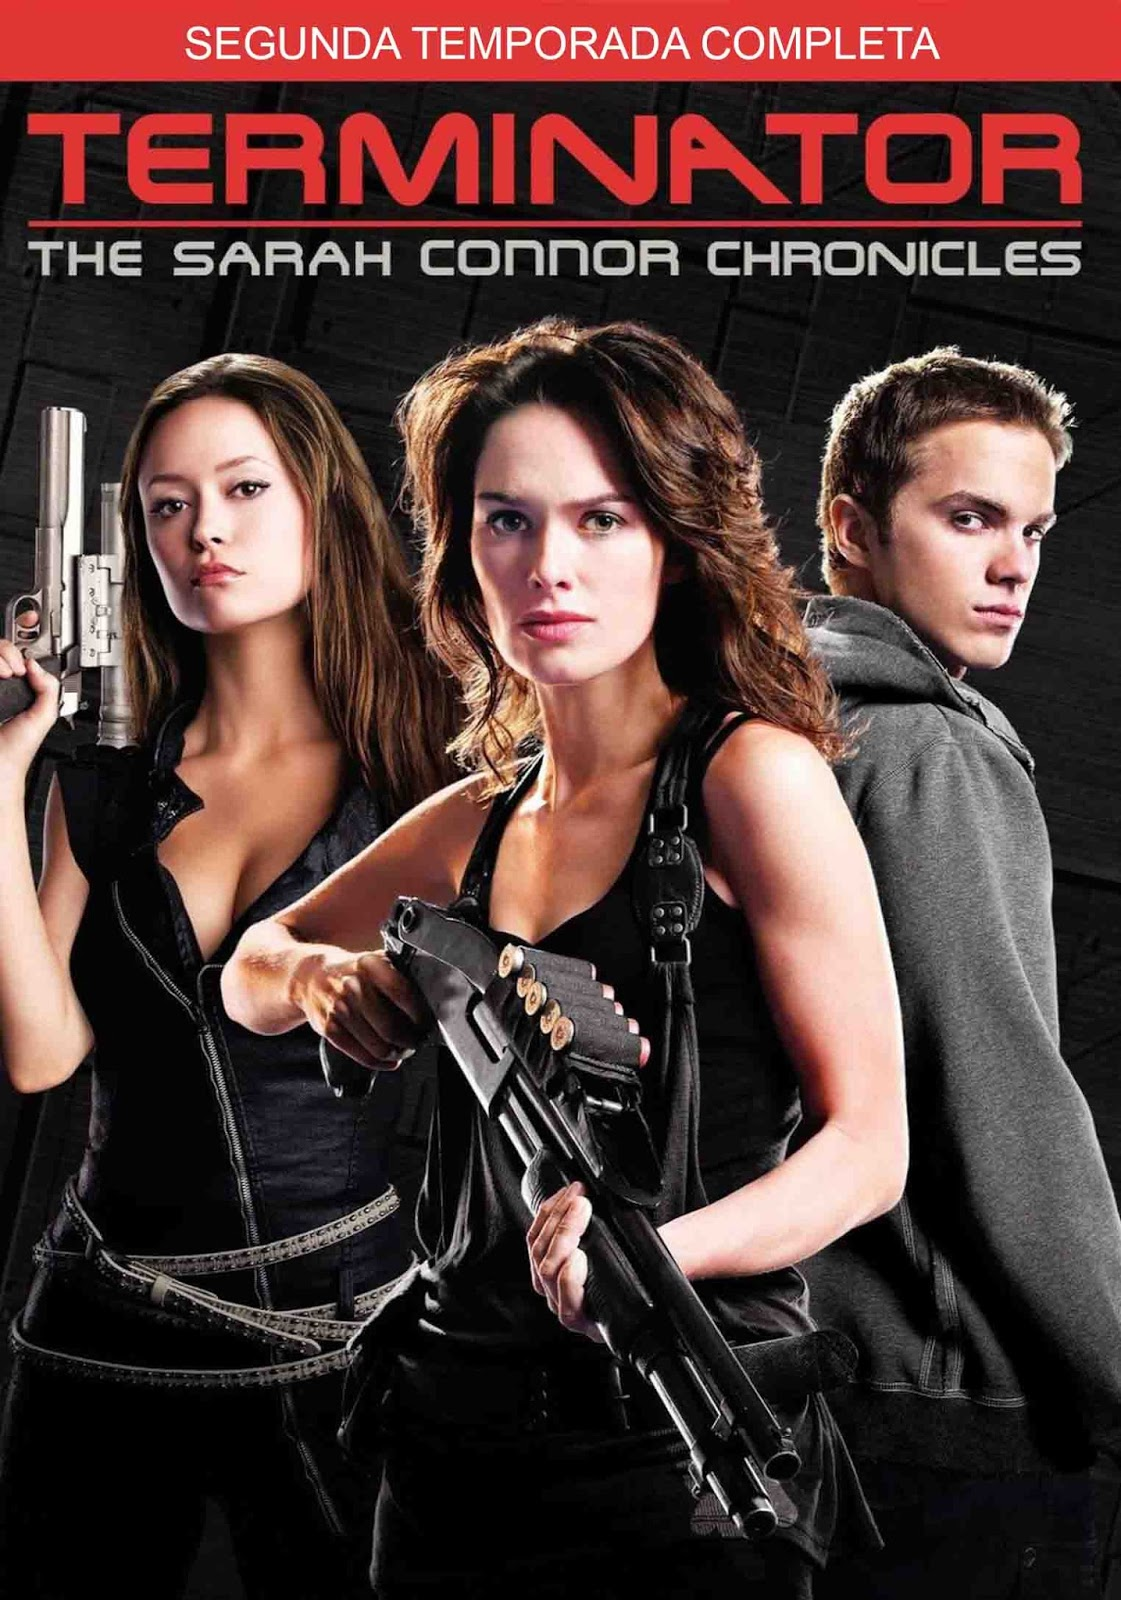 O Exterminador do Futuro: Crônicas de Sarah Connor 2ª Temporada Torrent - Blu-ray Rip 720p Dublado (2009)